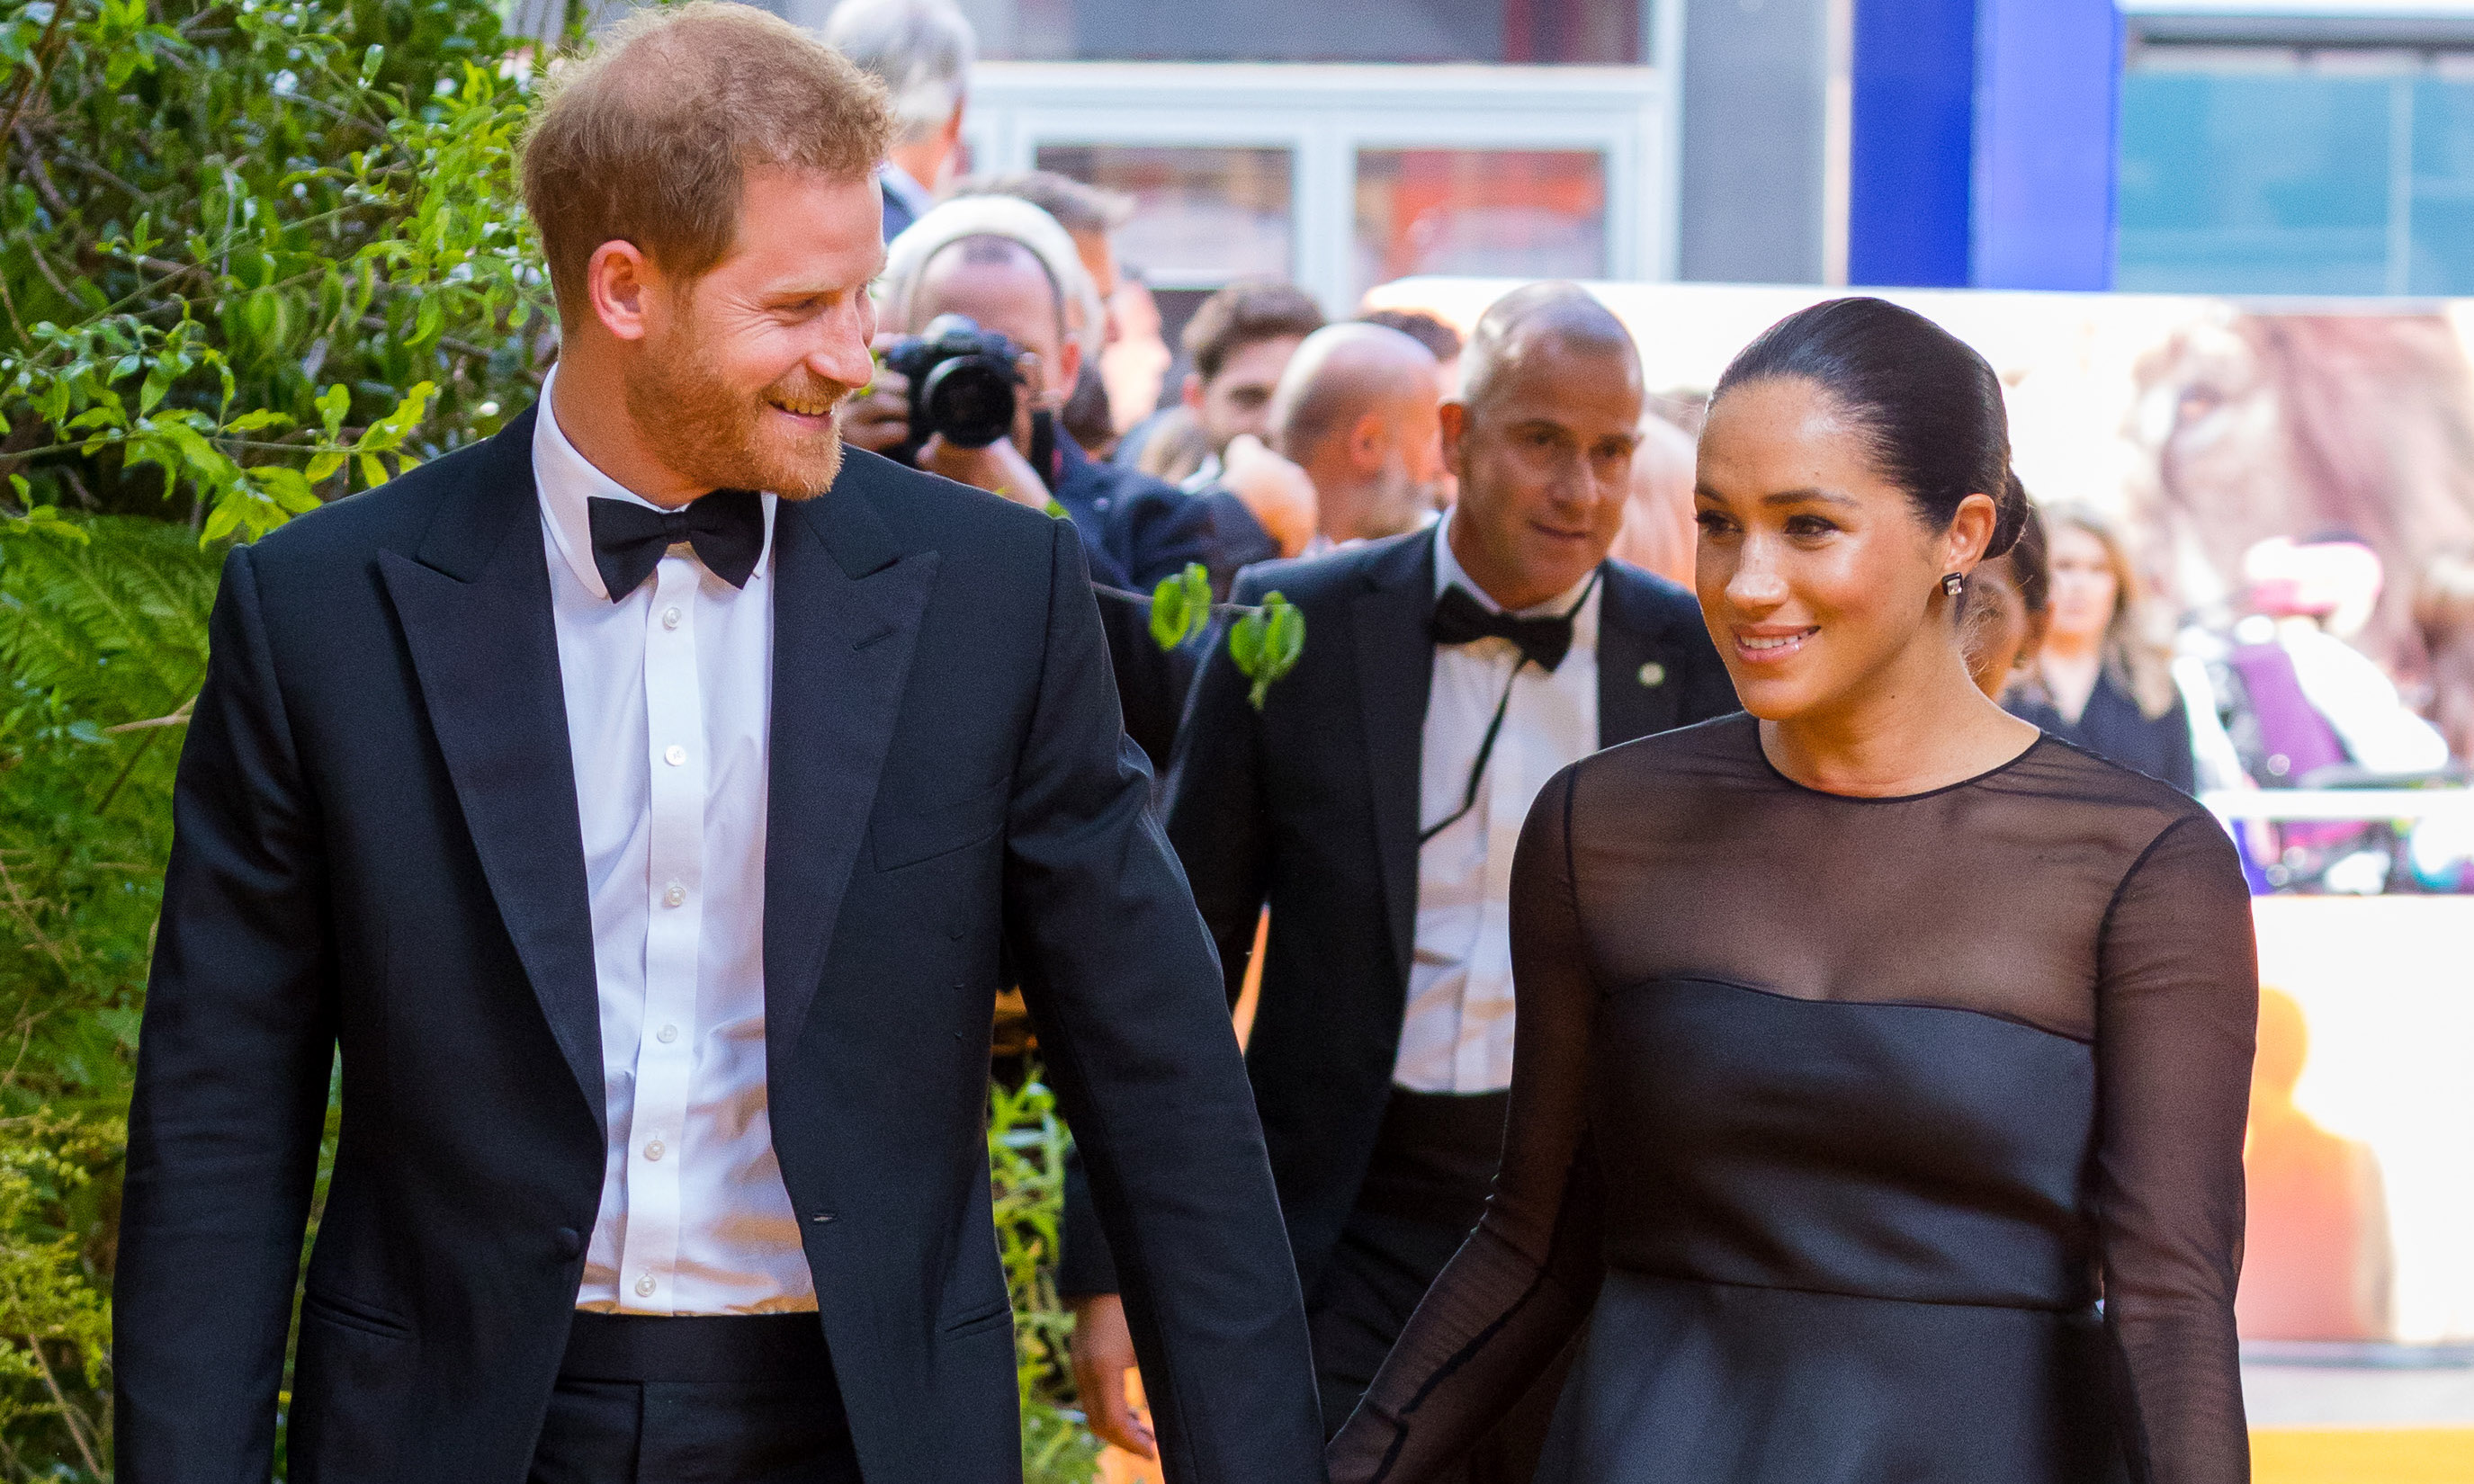 Woman called 'world's best matchmaker' says she wouldn't have picked Meghan for Harry